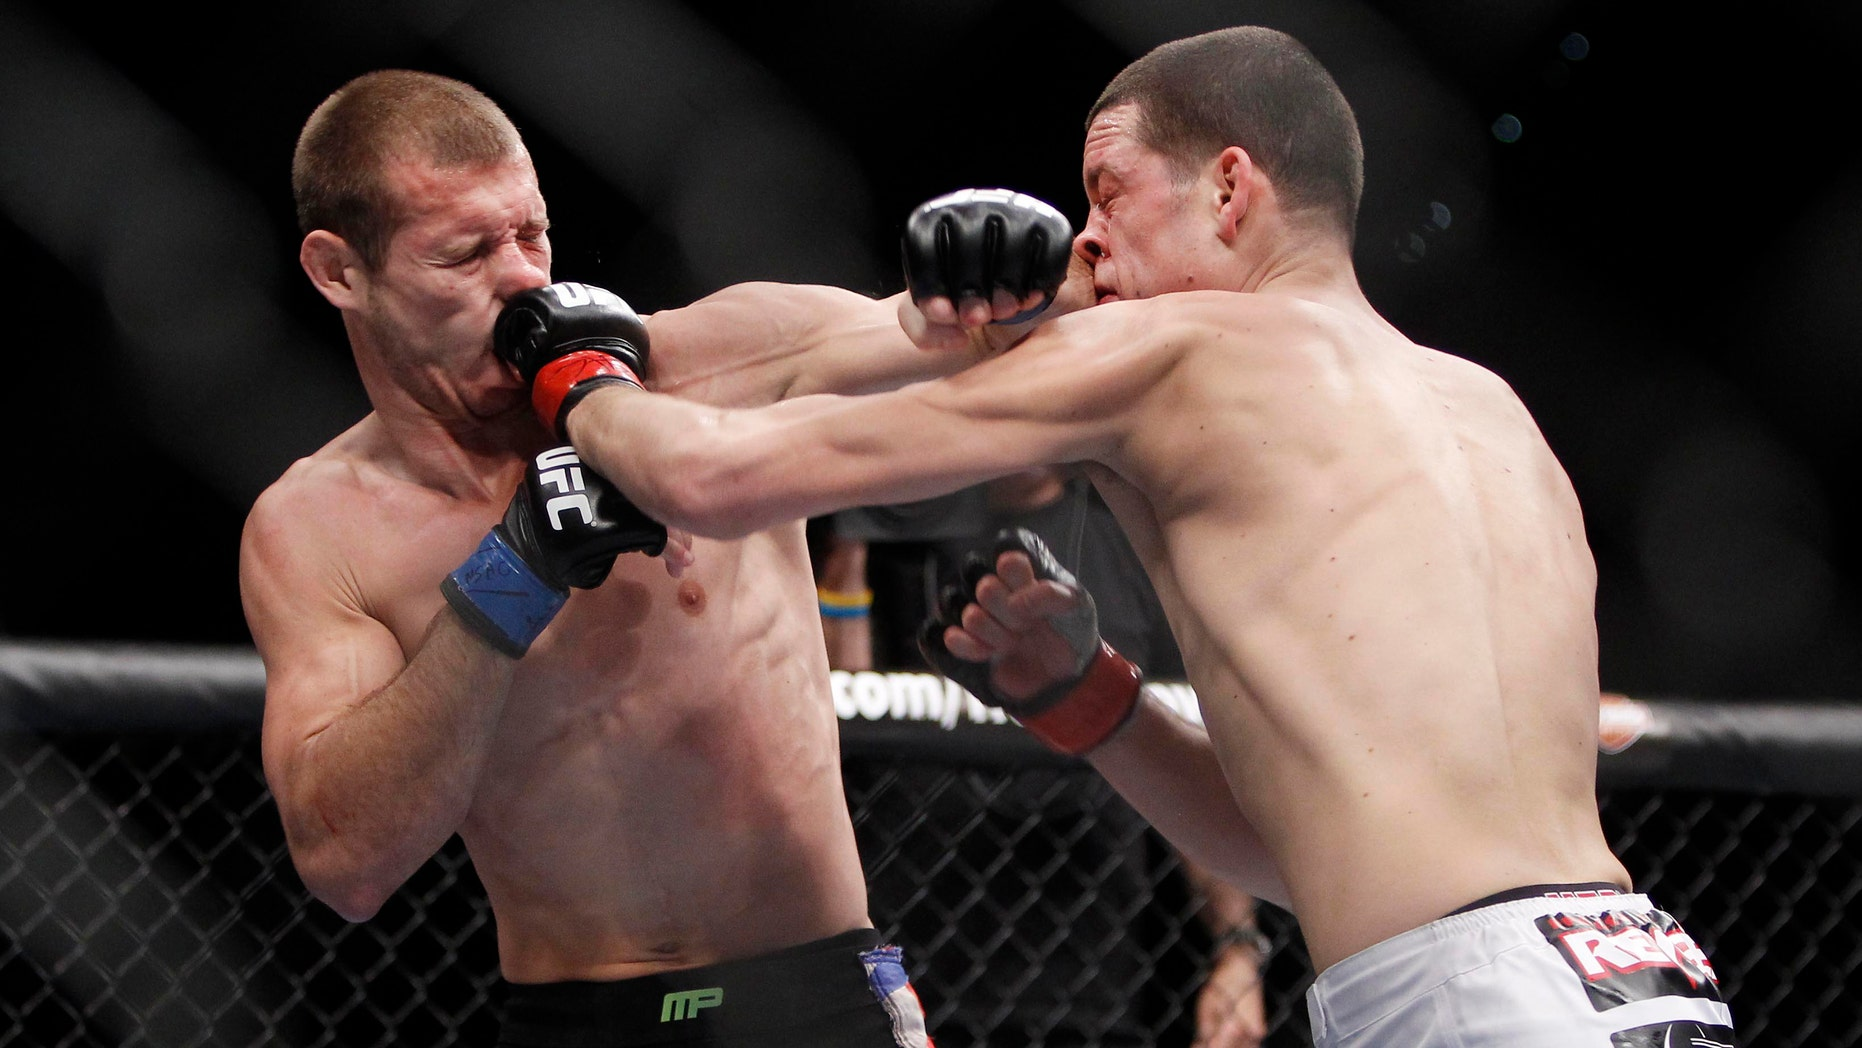 Donald Cerrone, left, trades punches with Nate Diaz during their UFC lightweight mixed martial arts match Friday, Dec. 30, 2011 at The MGM Grand Garden Arena in Las Vegas. Diaz won by unanimous decision. (AP Photo/Eric Jamison)